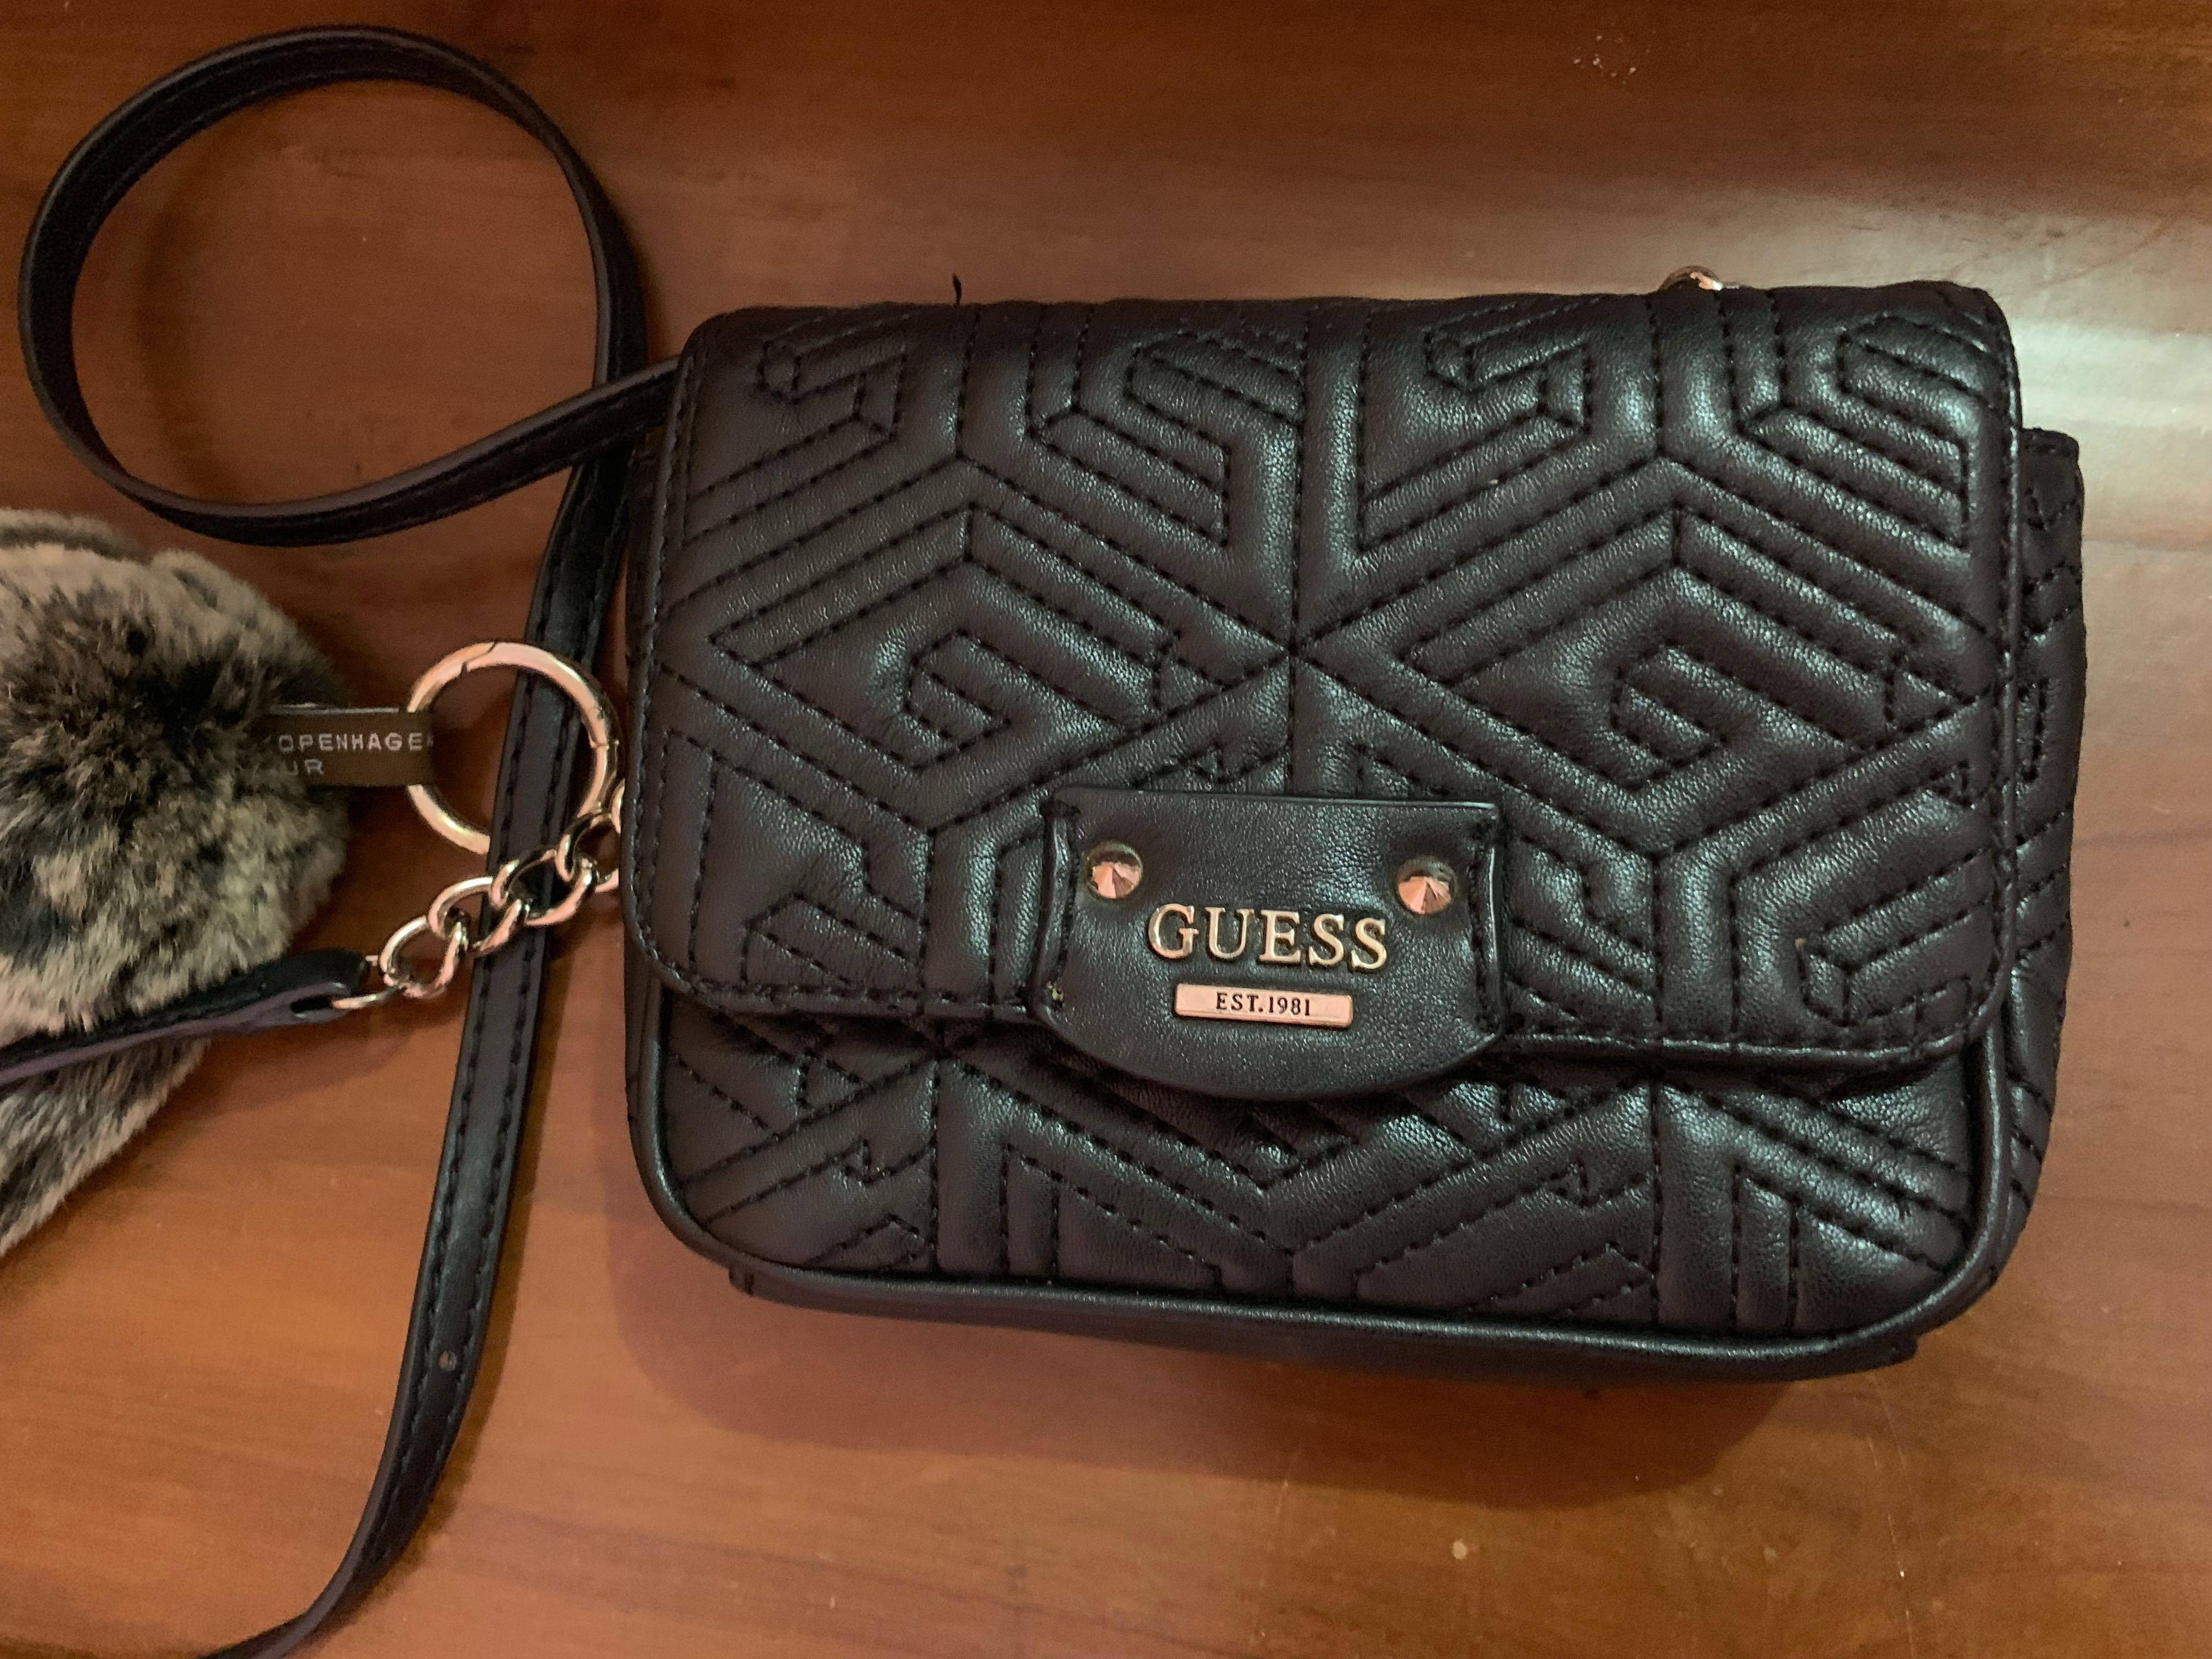 Tas Guess ( NET JGN DINEGO, NEGO=NO REPLY )